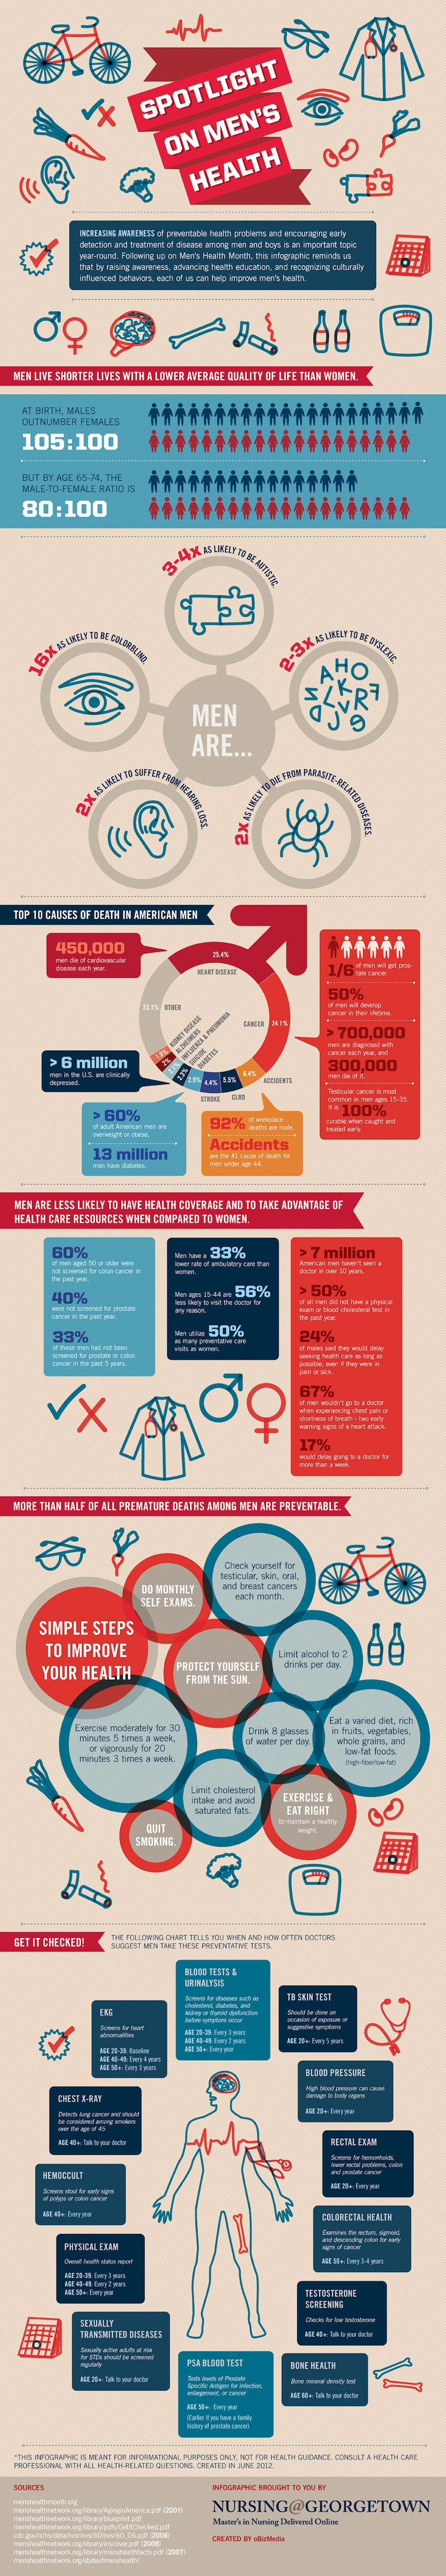 Men's Health: Statistical Facts and Preventive Strategies - Infographic